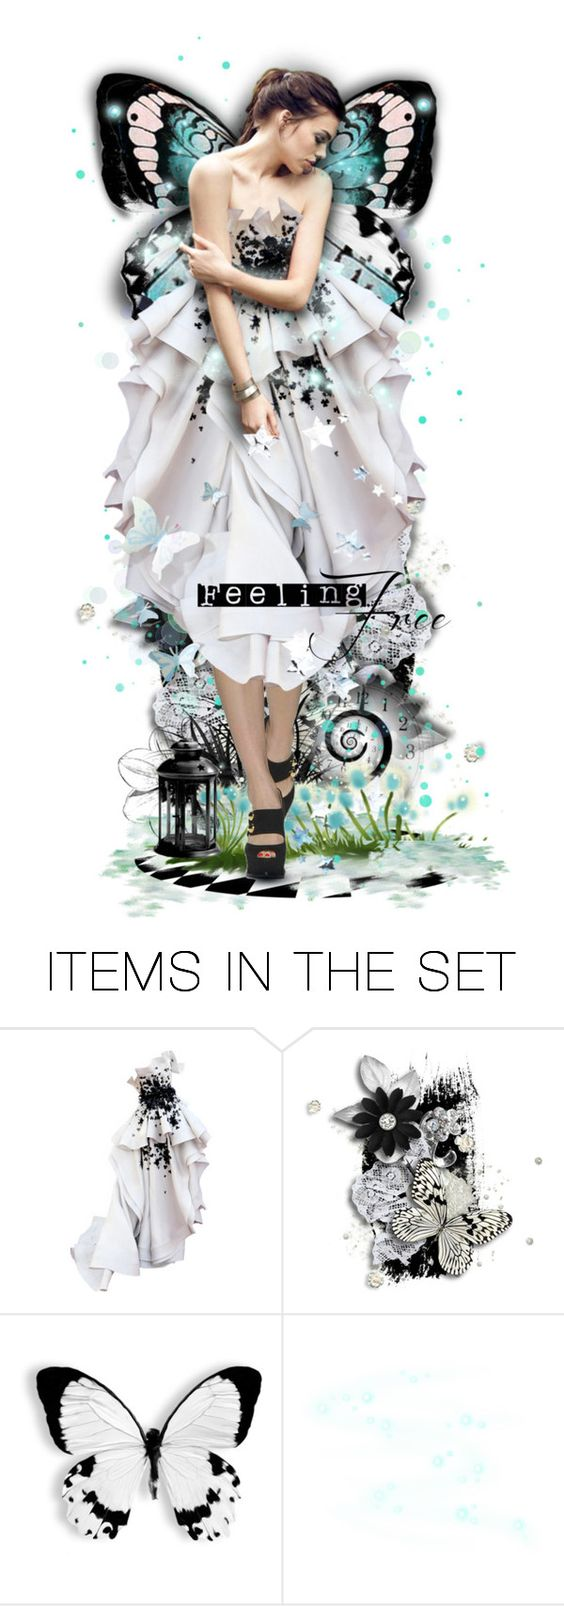 """""""New Beginning"""" by lastchance ❤ liked on Polyvore featuring arte, art, dolls y lastchance"""